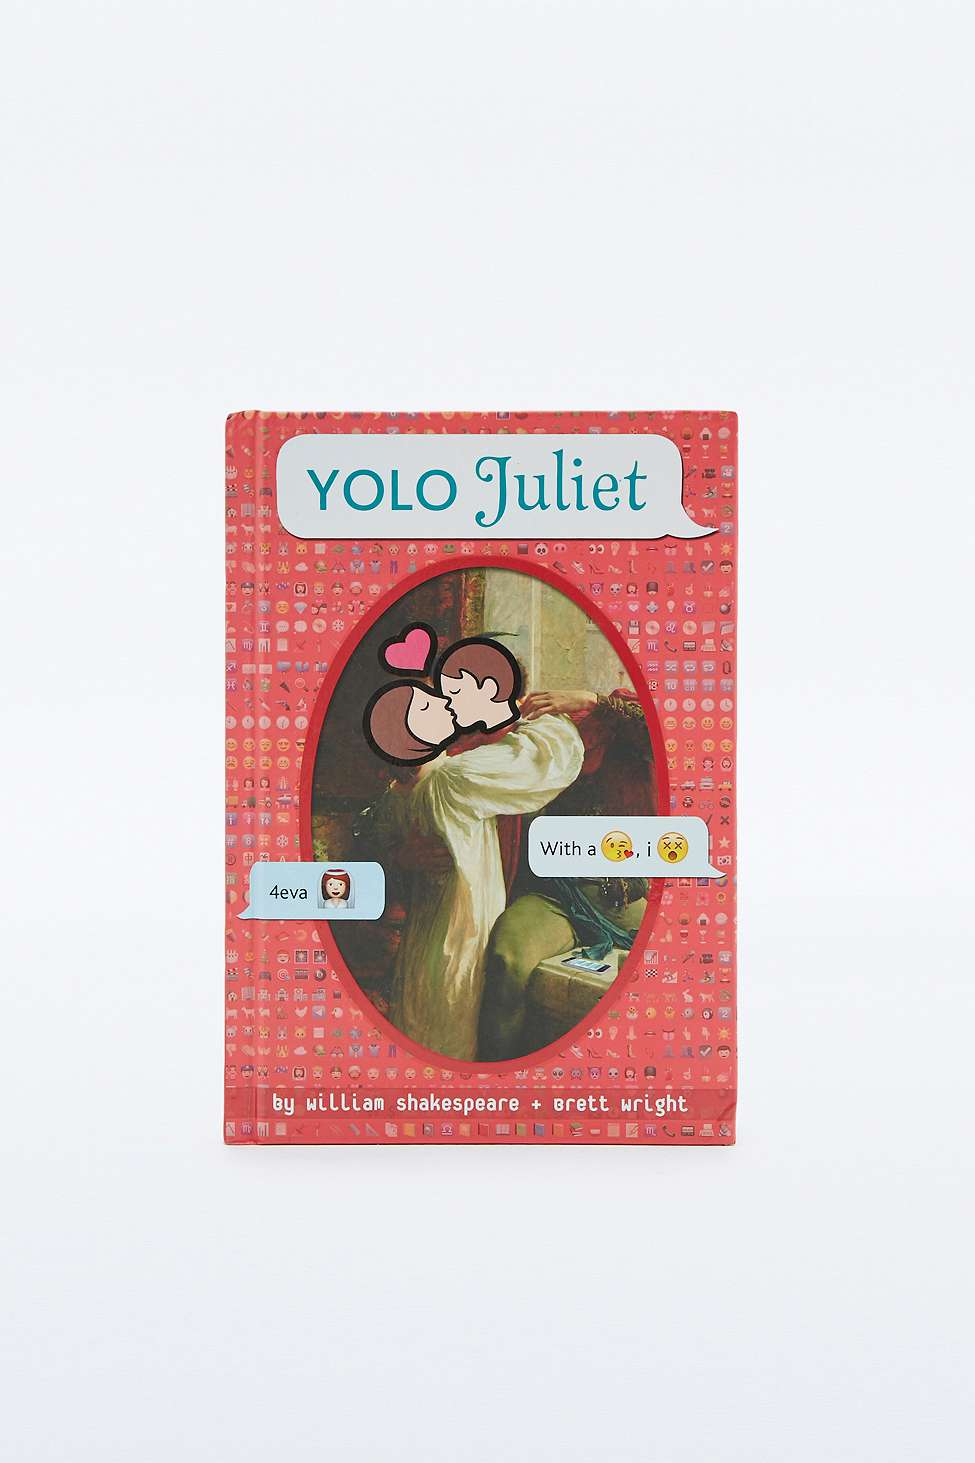 YOLO Juliet Unique And Quirky Gift Ideas Any Odd Person Will Appreciate (Fun Gifts!)